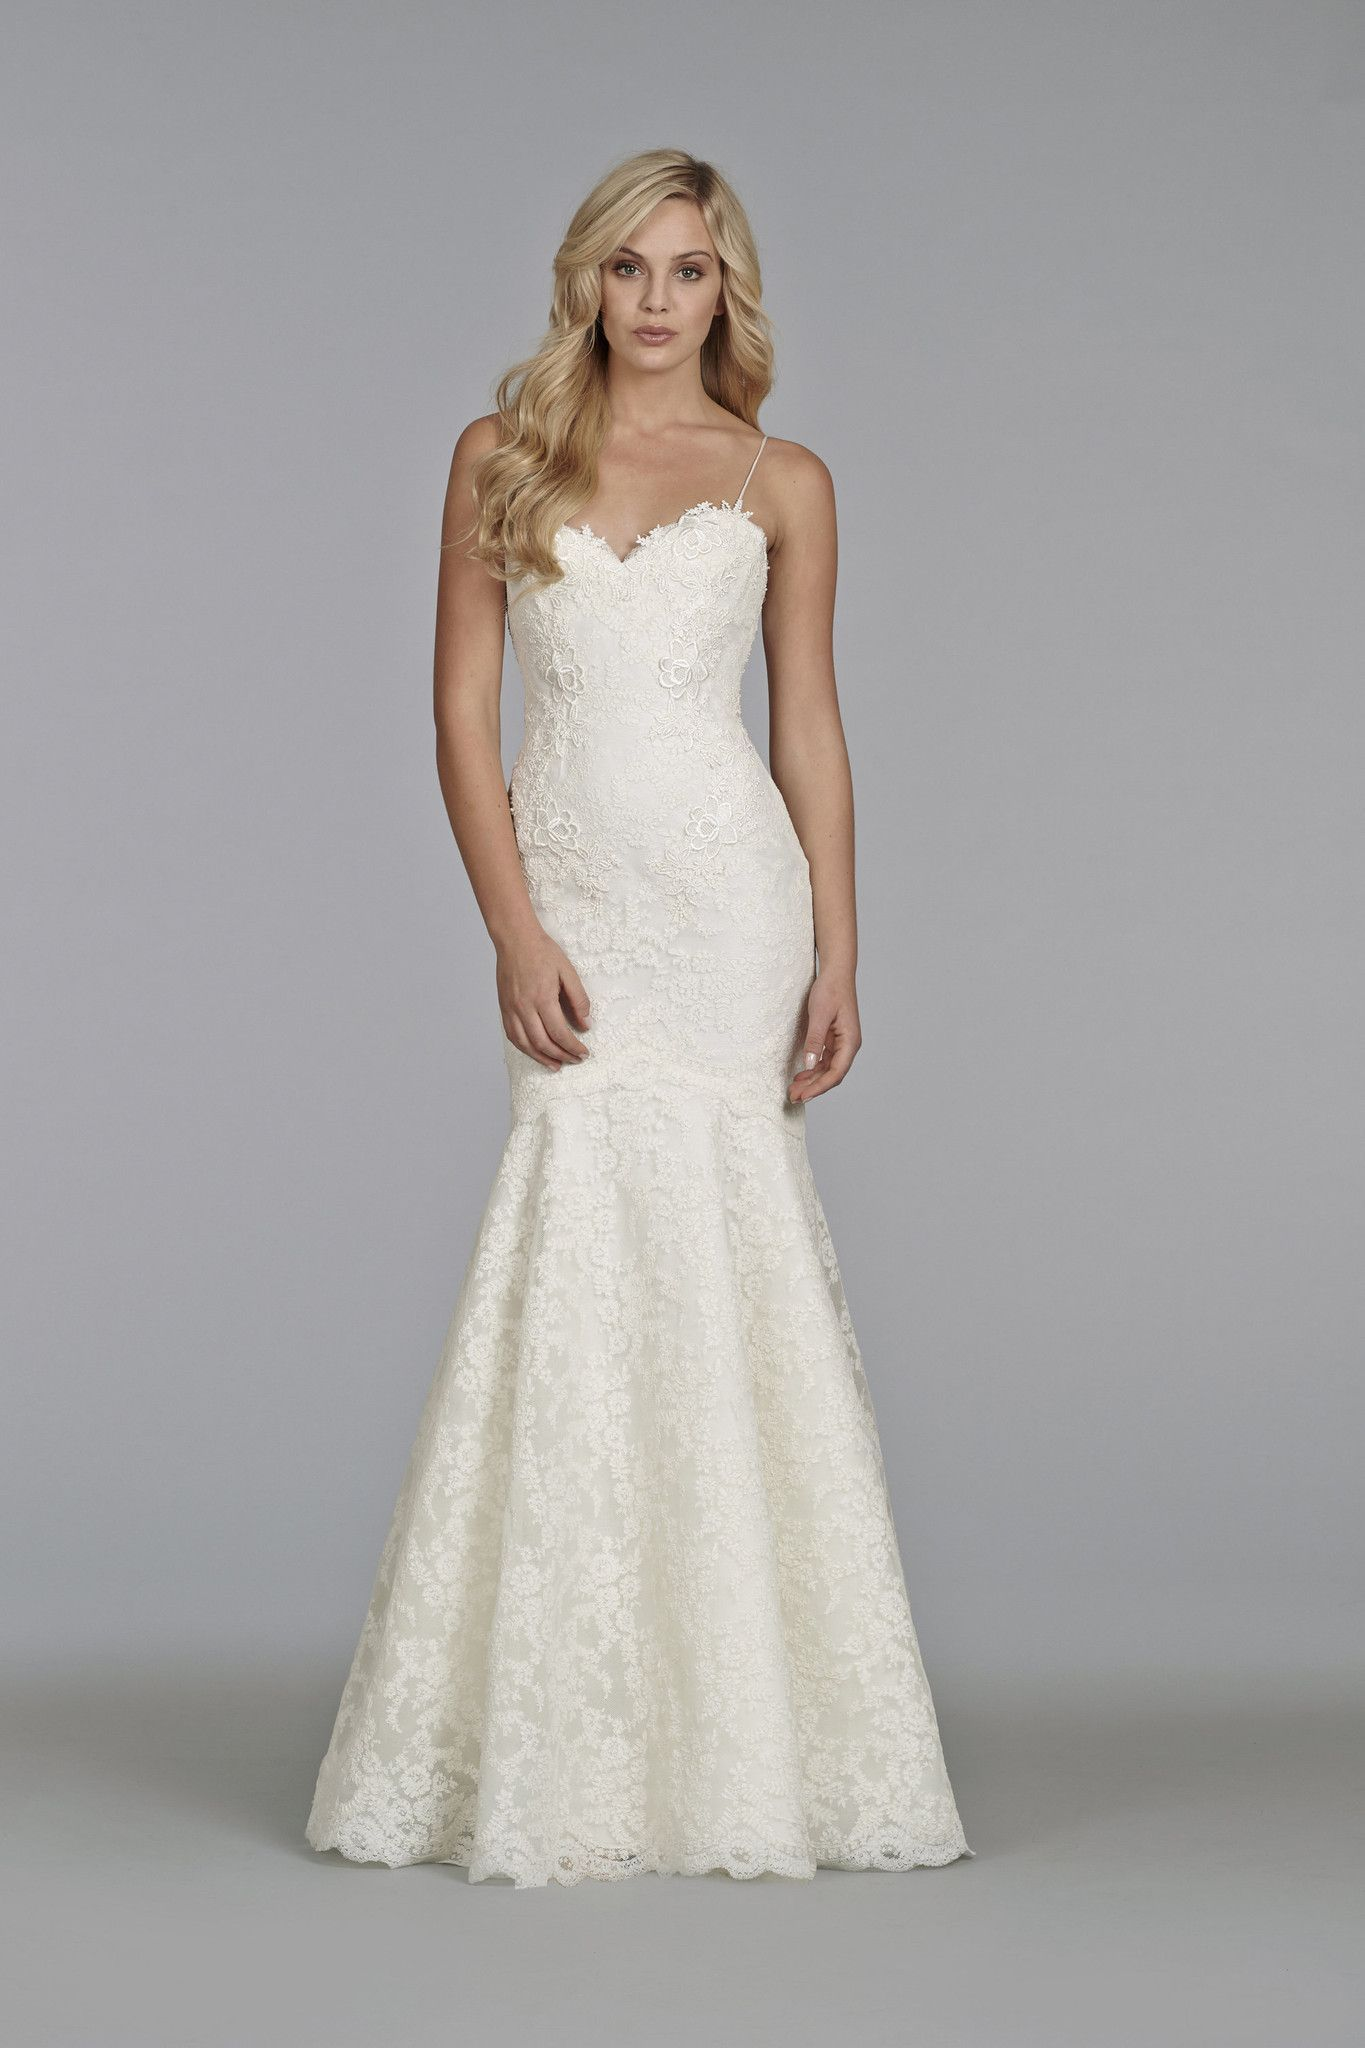 Tara Keely 2411 Is A Stunning Fit And Flare Gown The Sweetheart Bodice Is Framed By Delicate Straps Short Wedding Dress Wedding Dresses Designer Bridal Gowns